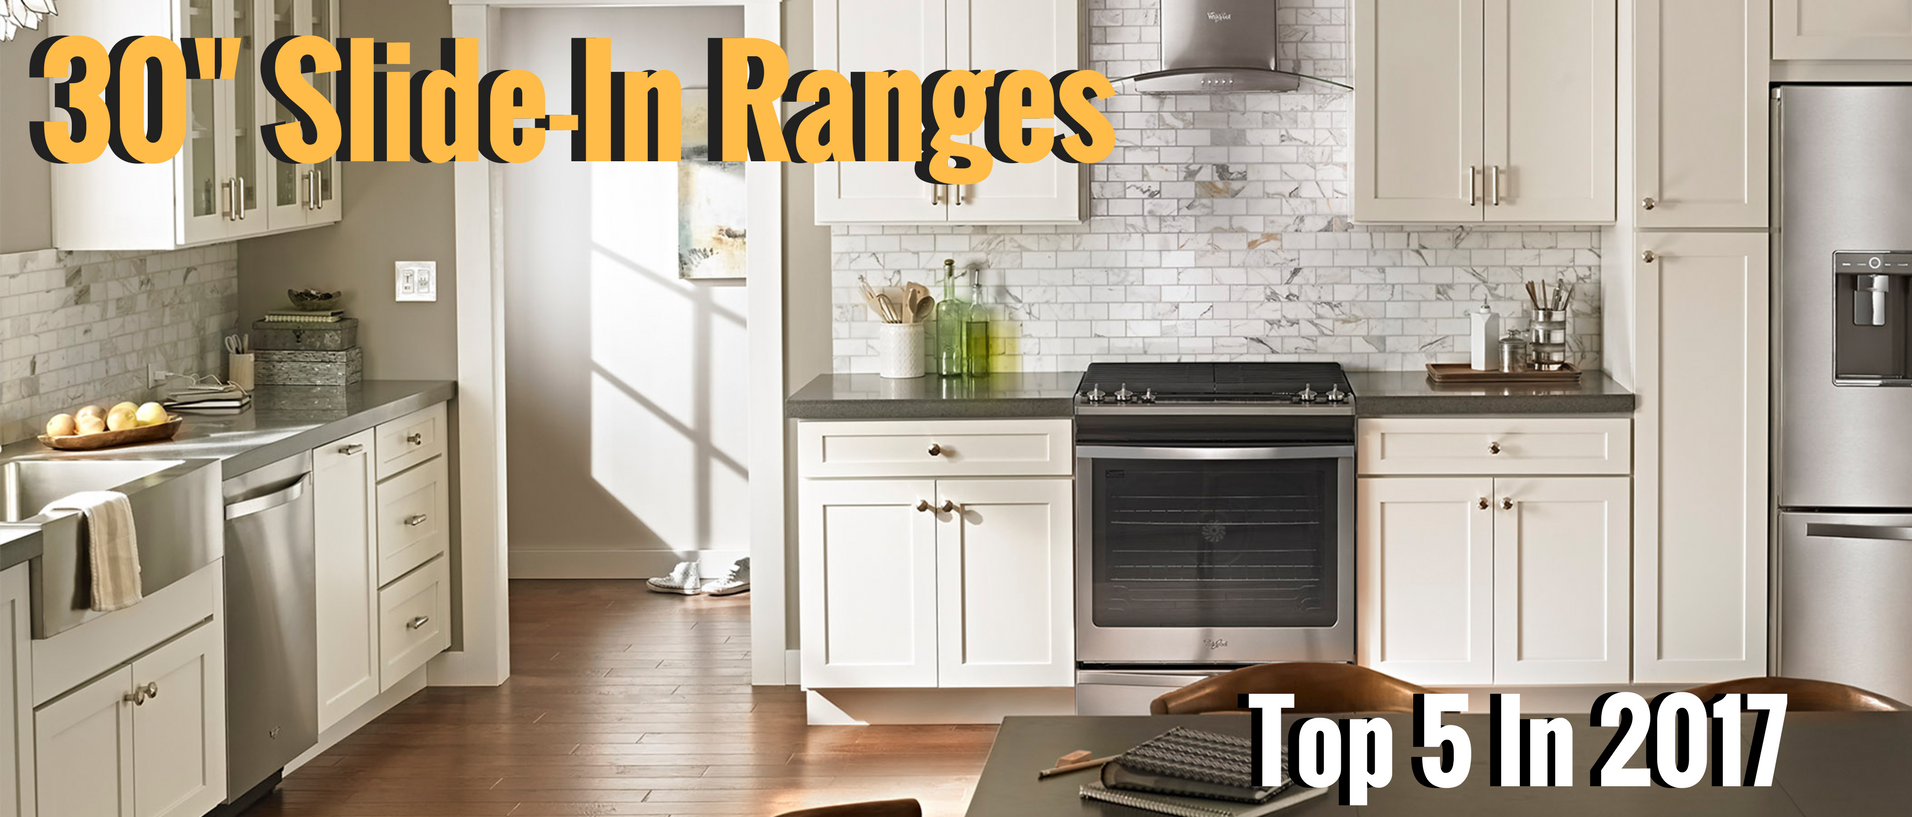 Top Five 30 Inch Slide-In Ranges in 2017 | Appliances Connection